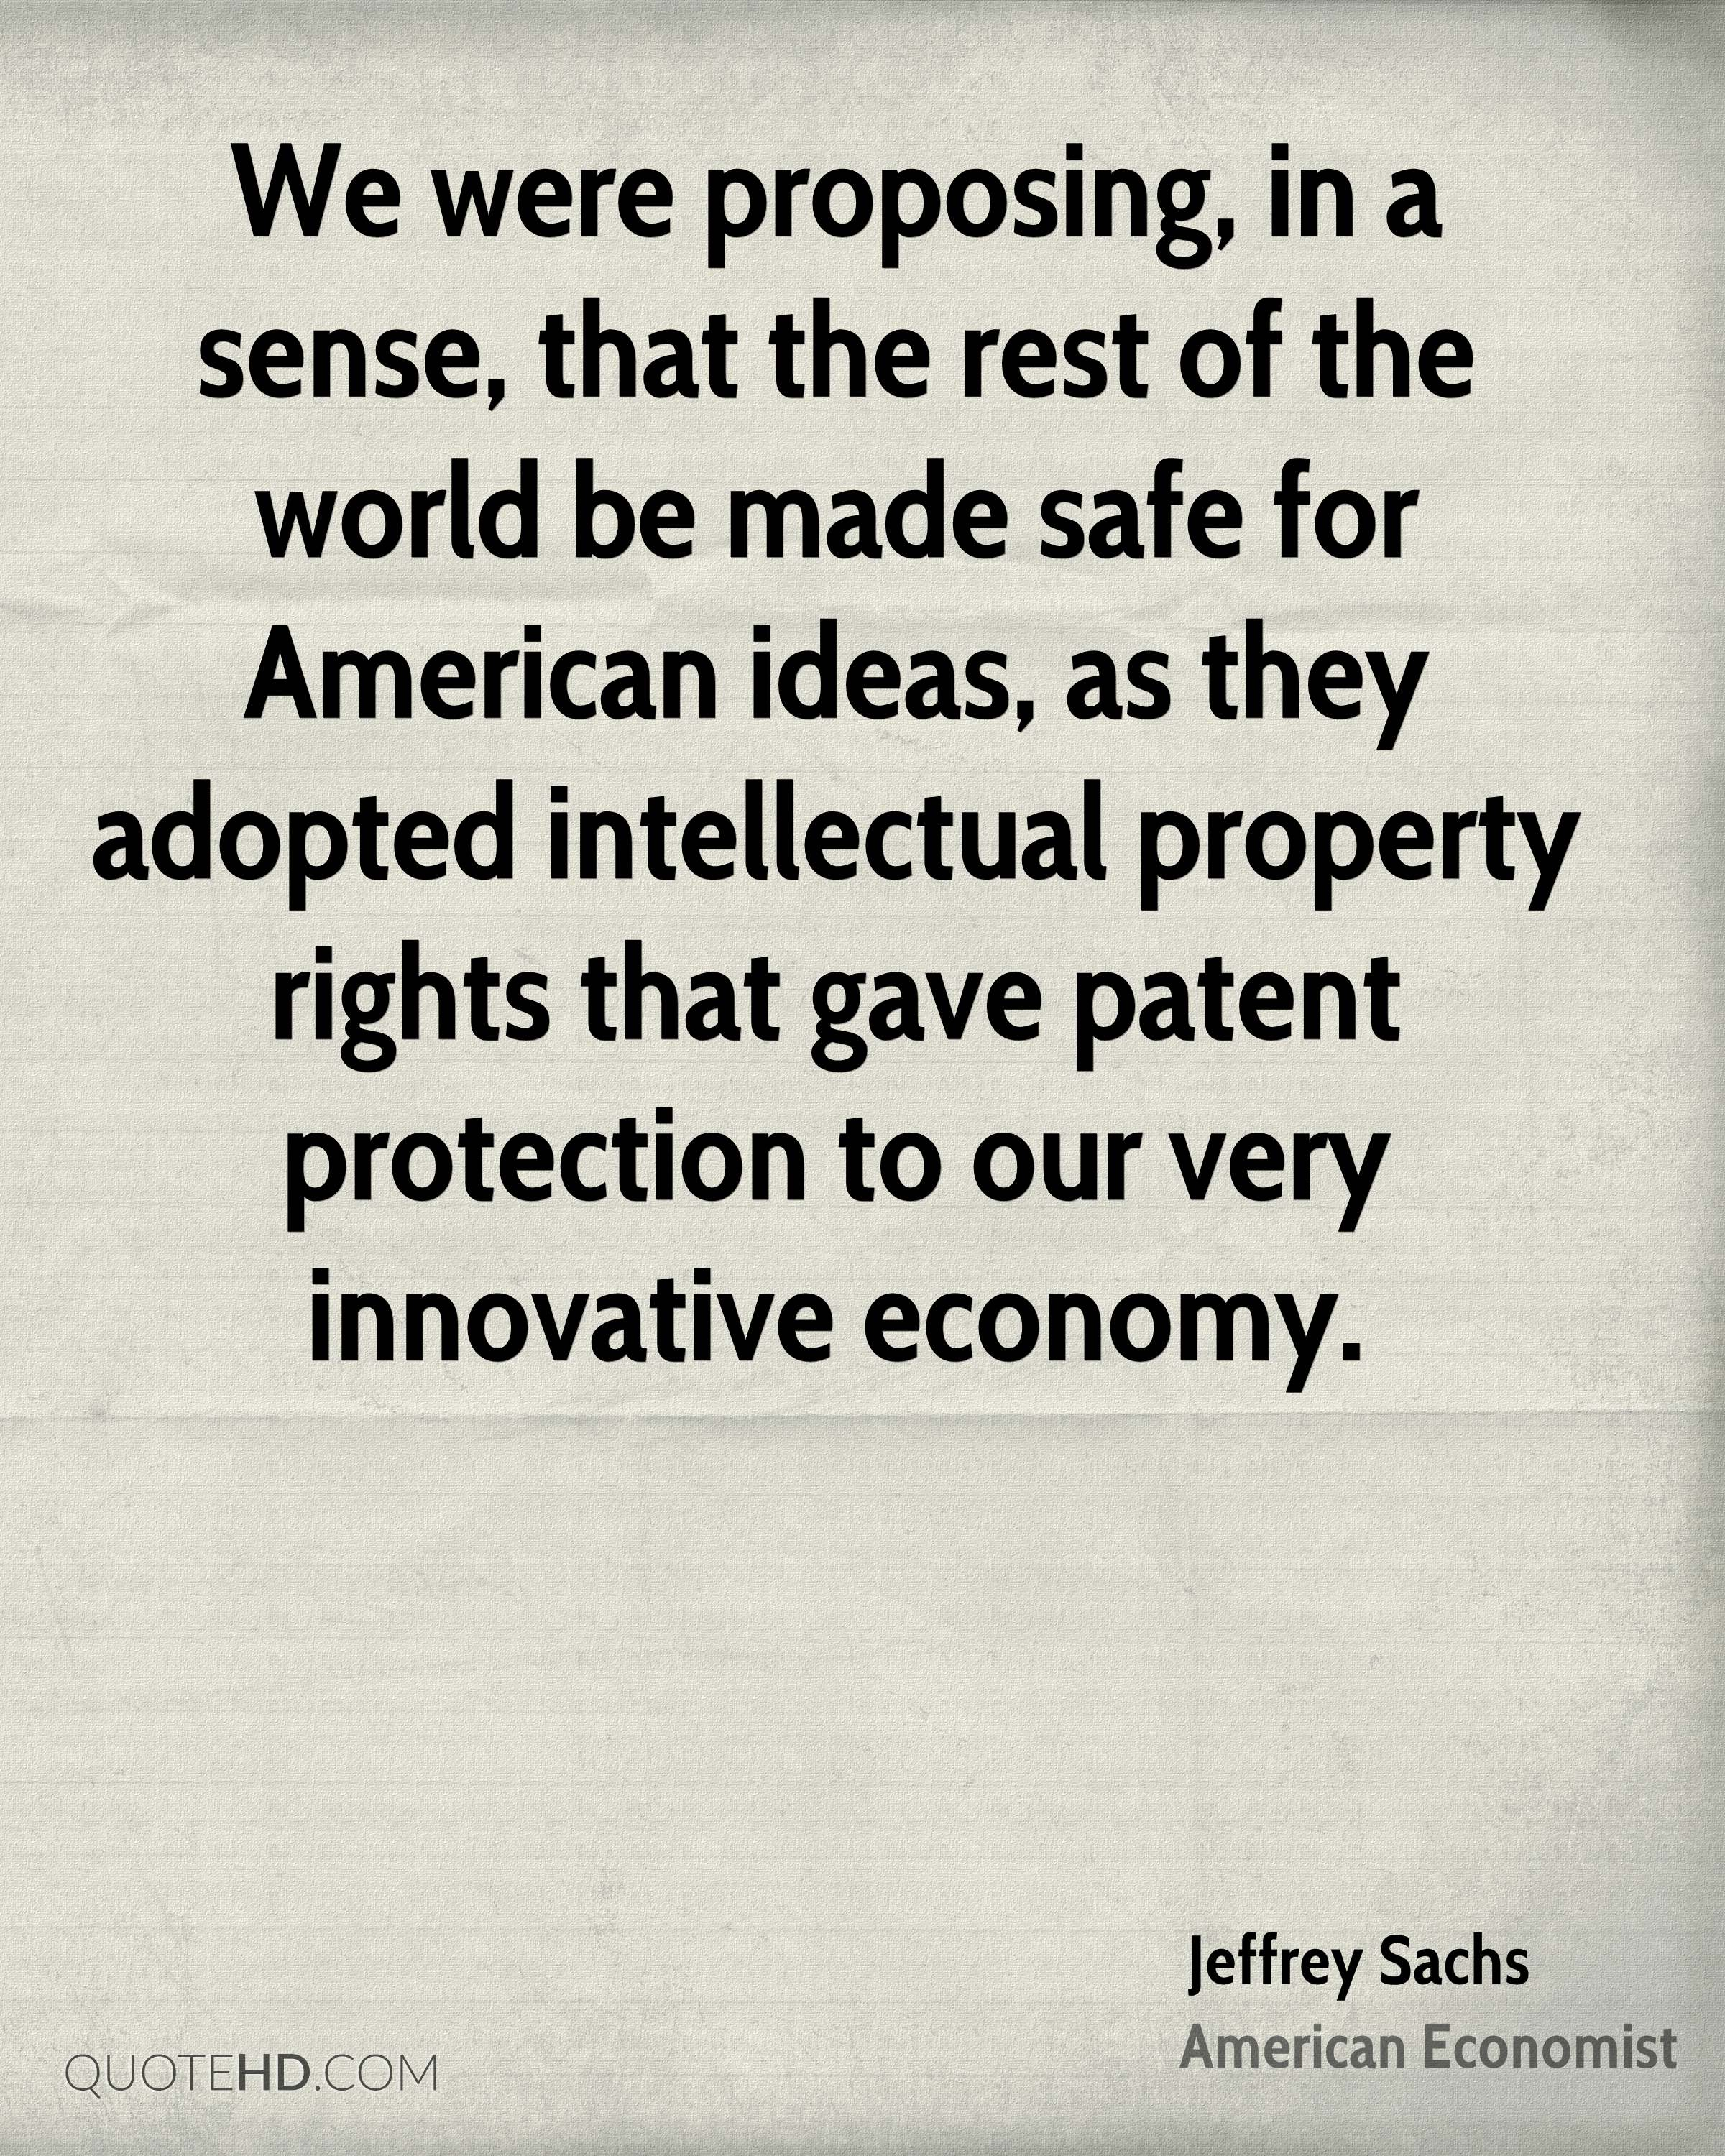 We were proposing, in a sense, that the rest of the world be made safe for American ideas, as they adopted intellectual property rights that gave patent protection to our very innovative economy.